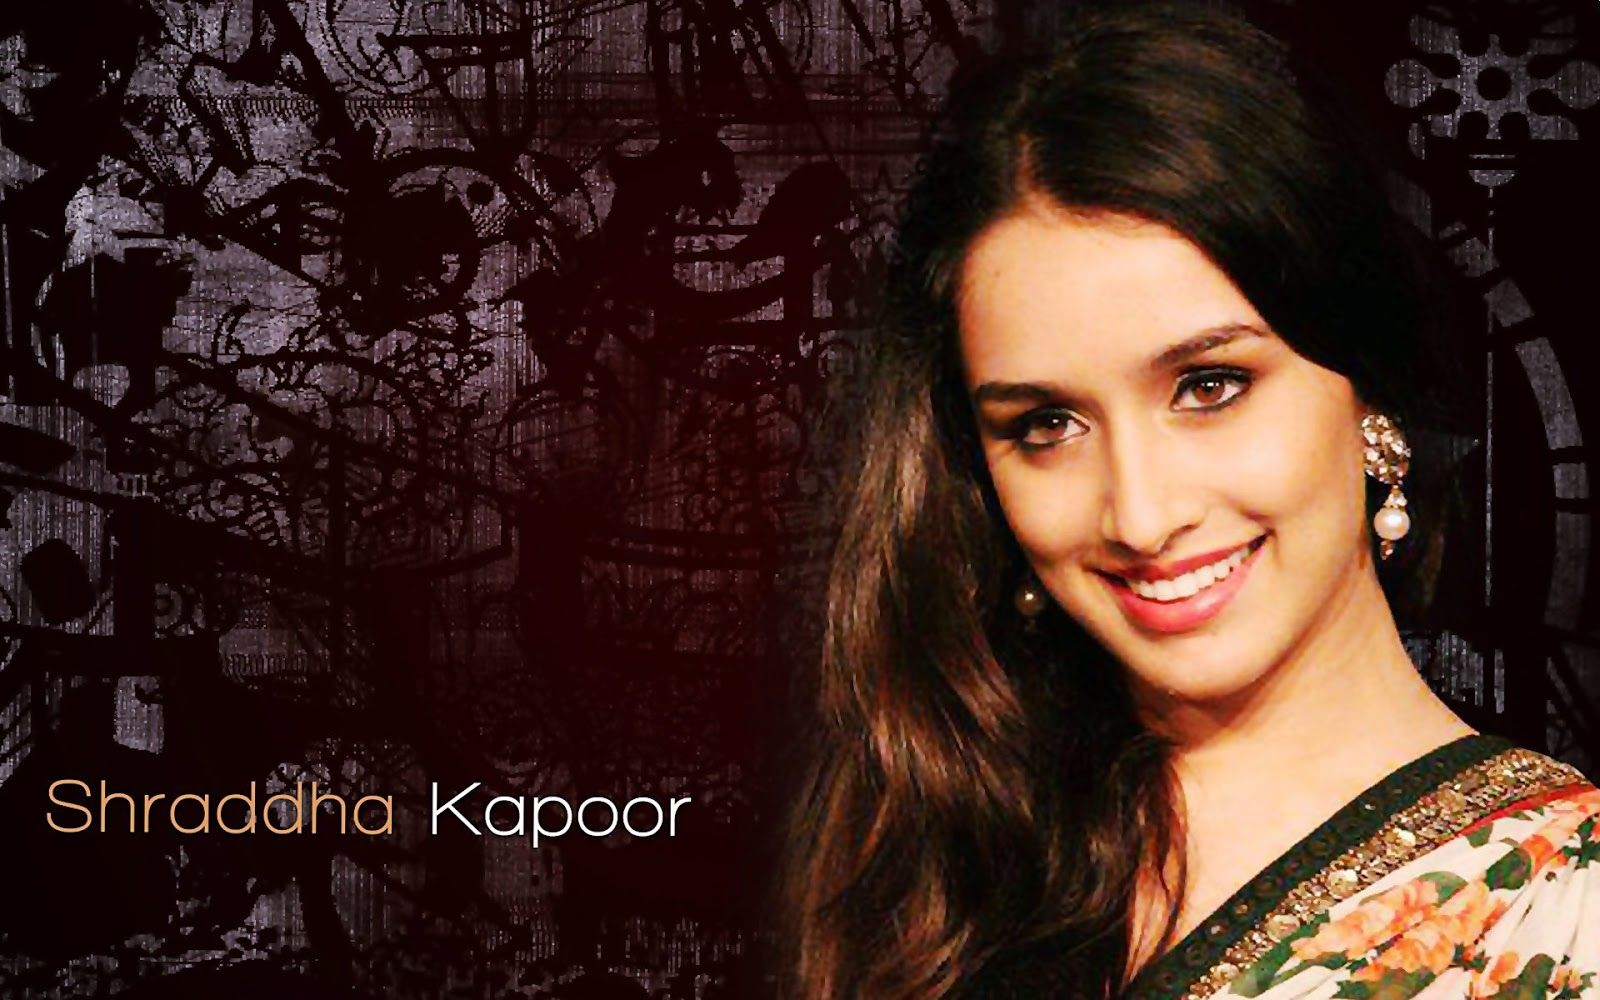 shraddha_kapoor_wallpaper_97338035